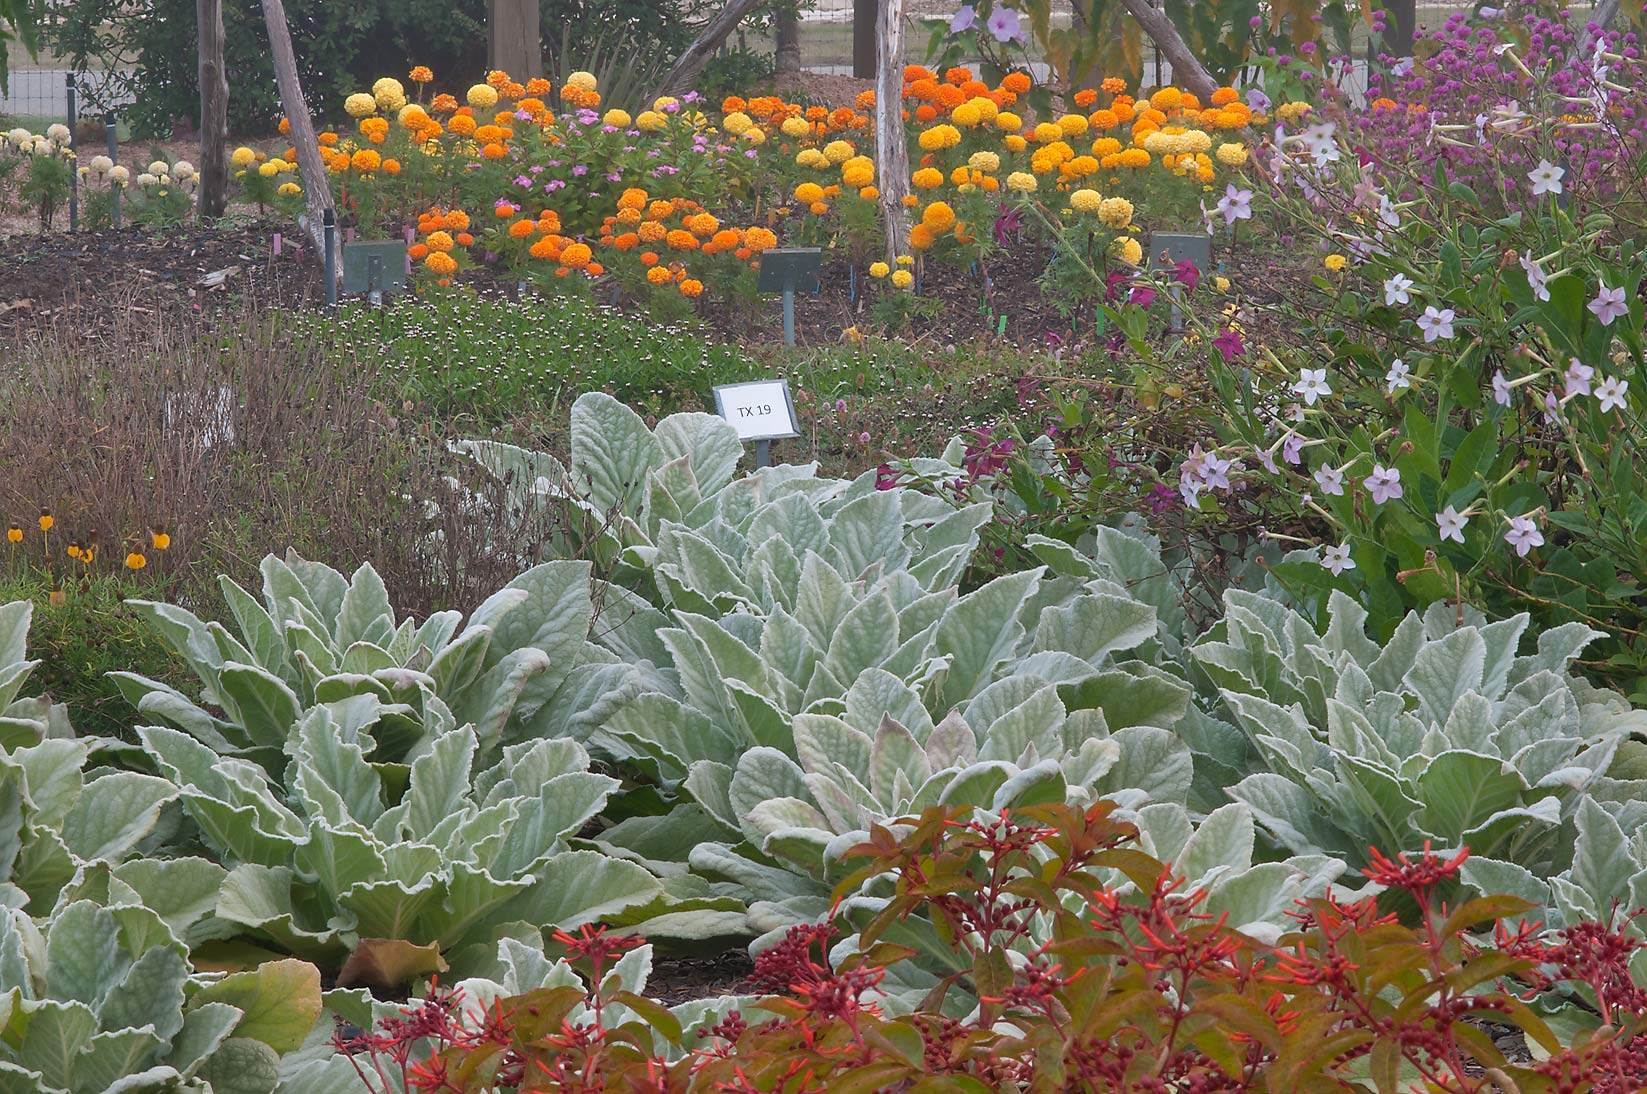 Flower beds in TAMU Horticultural Gardens in...M University. College Station, Texas